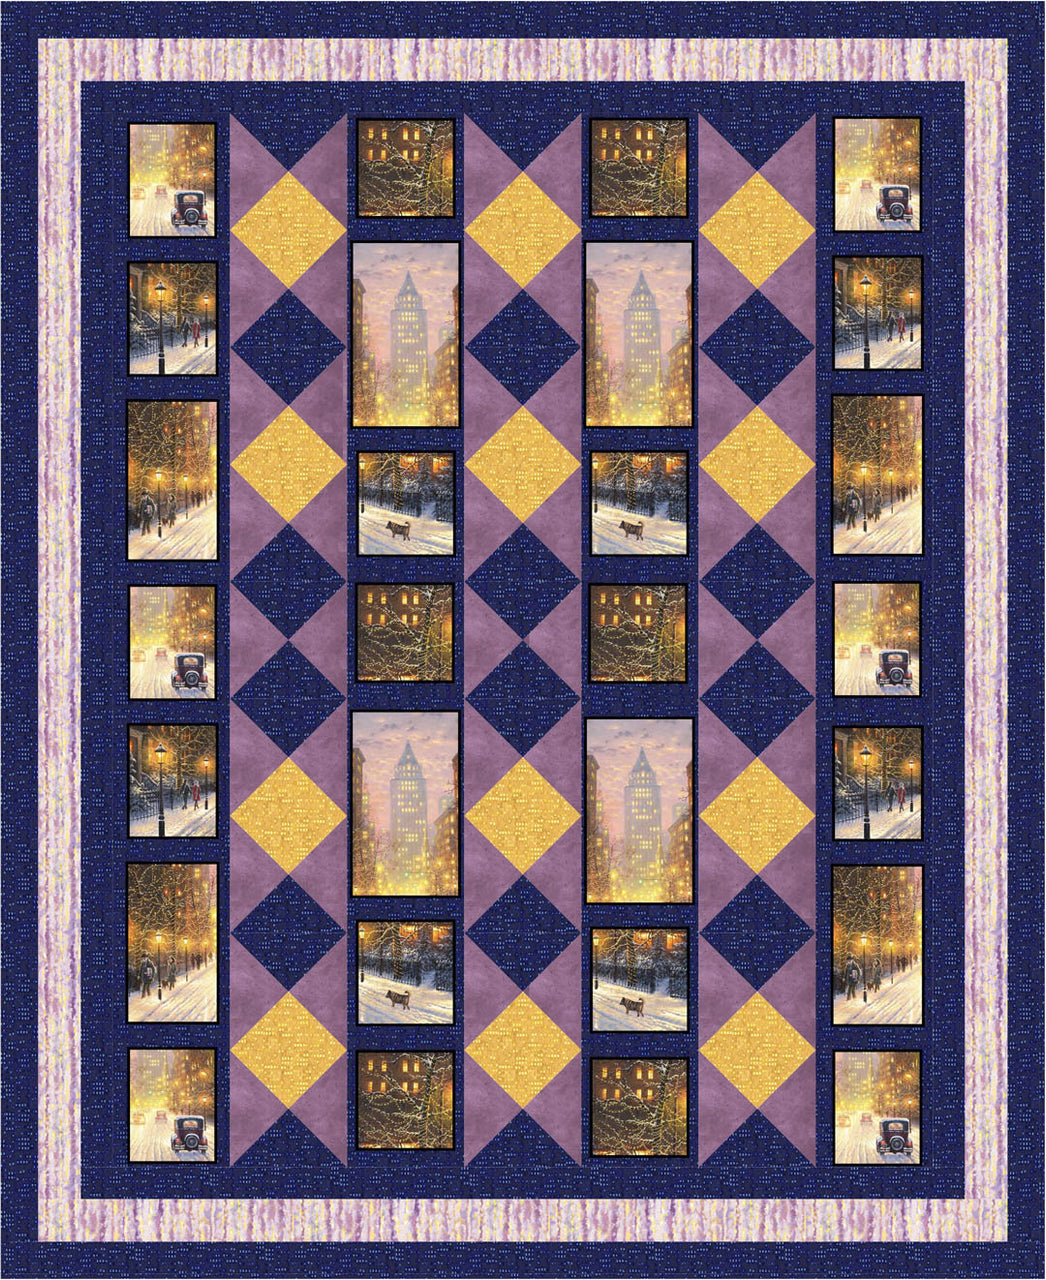 City Lights Lap Quilt<br>by Gina Gempesaw<br>Available Now